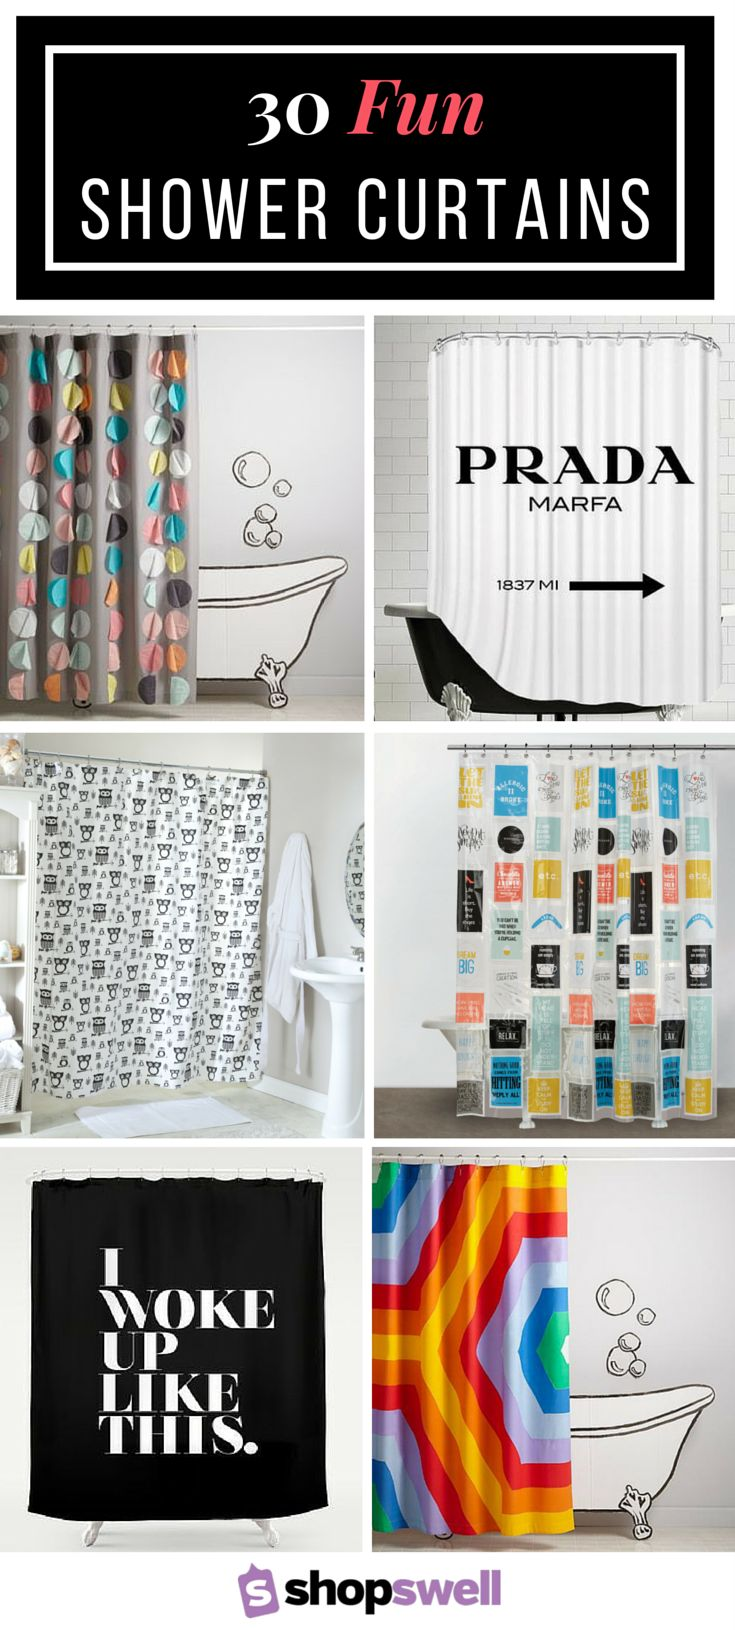 Put some personality in your bathroom to liven up your morning routine with one of these 30 funky shower curtains.